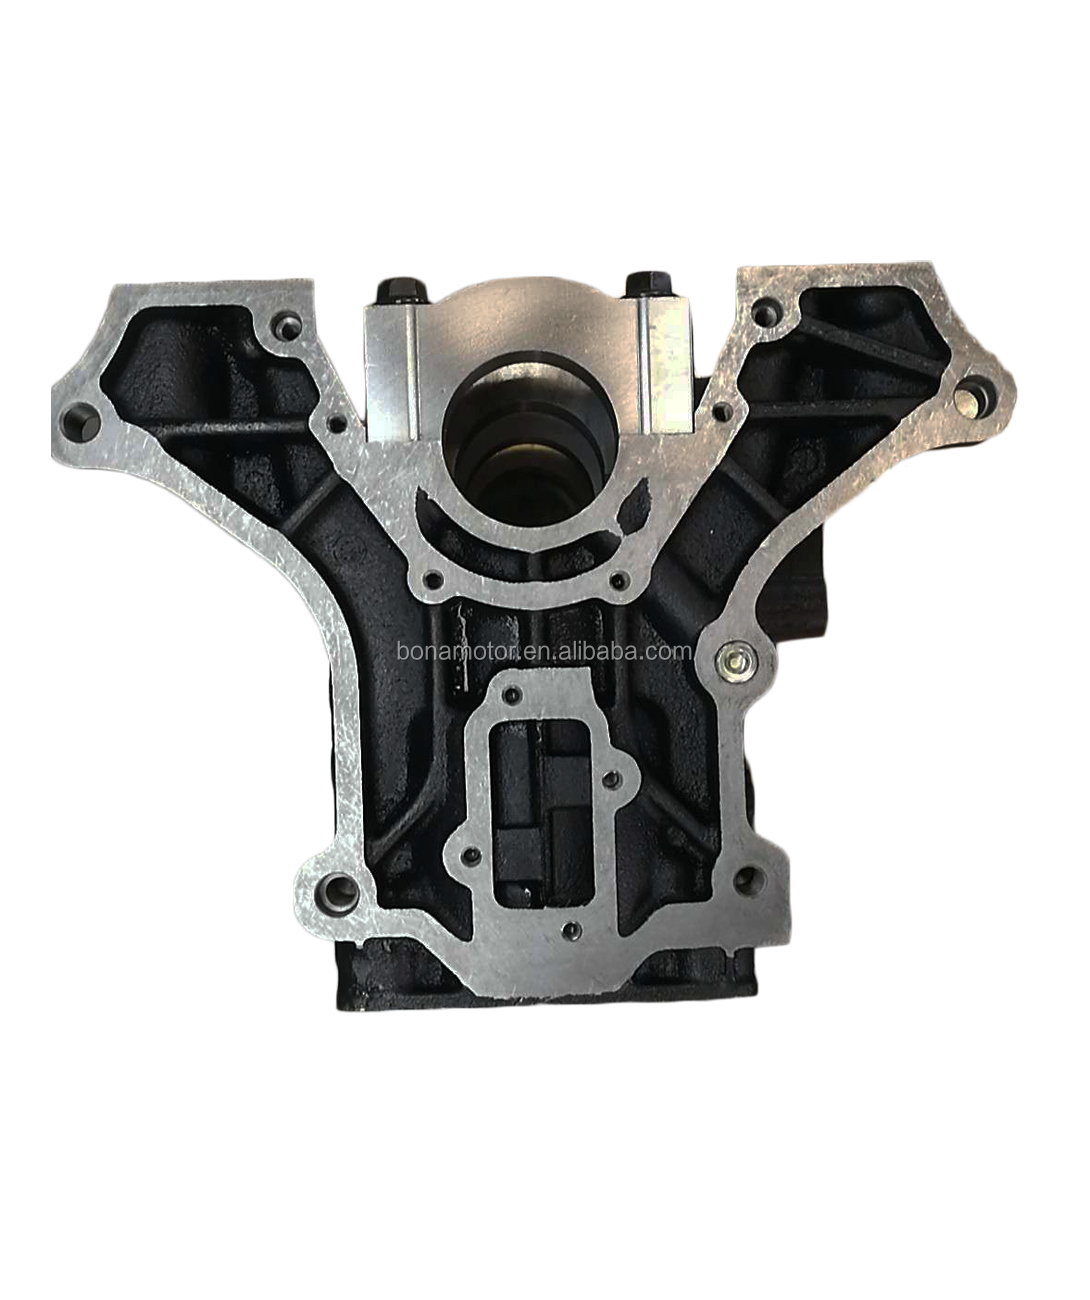 Auto Engine Block for SUZUKI F8B 368QE 3cly Cylinder Block